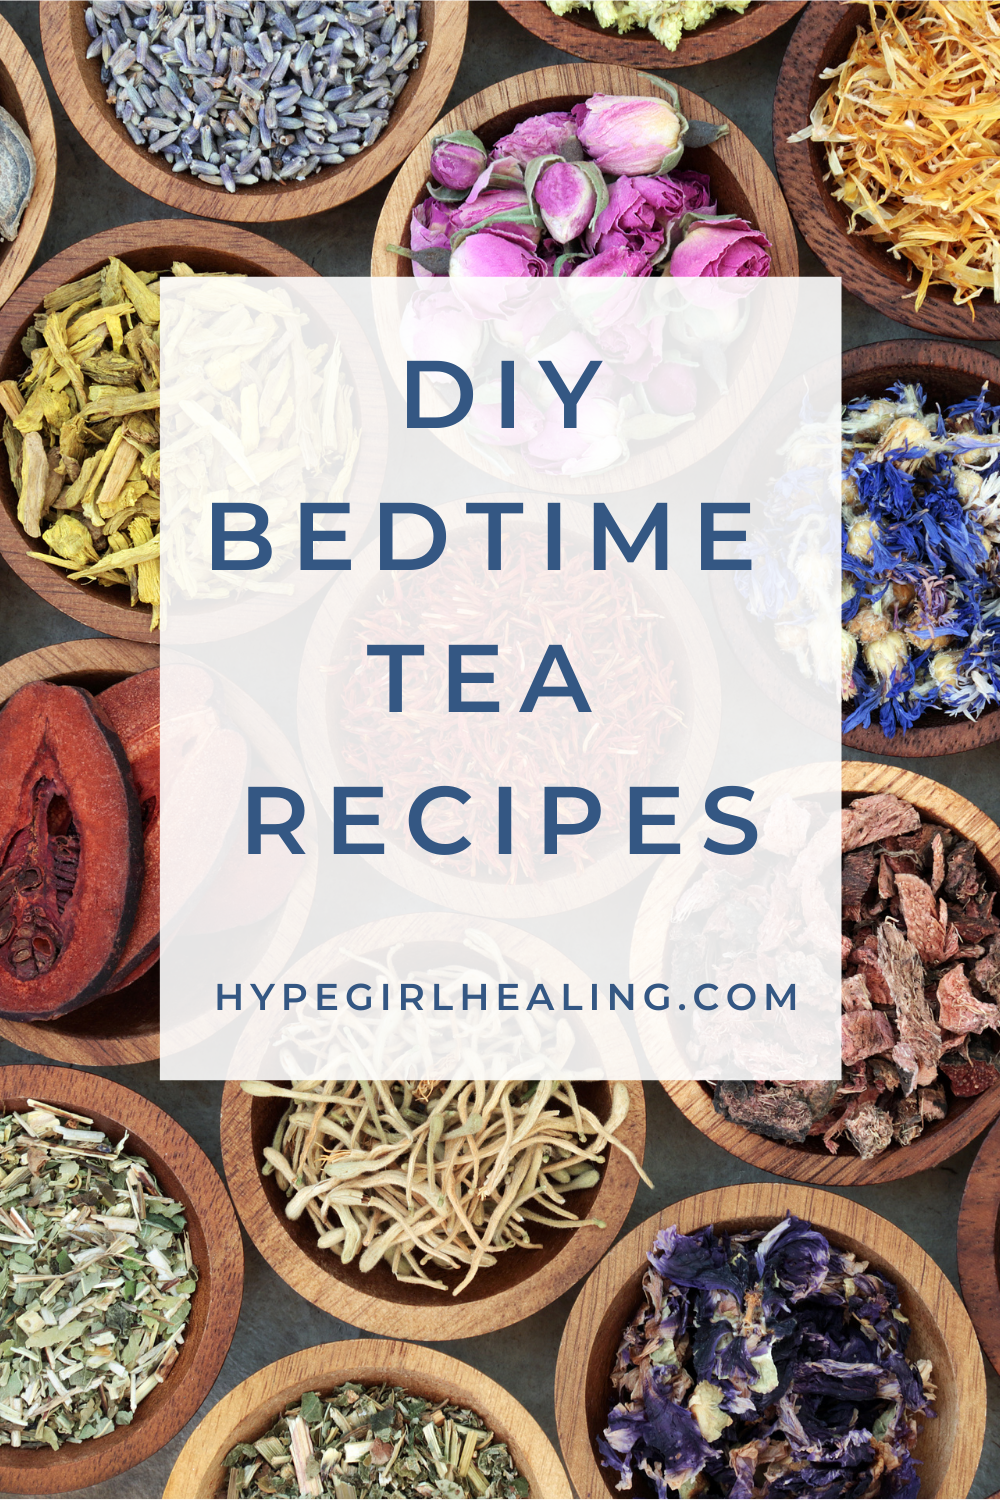 dried herbs in wooden bowls for bedtime tea recipe